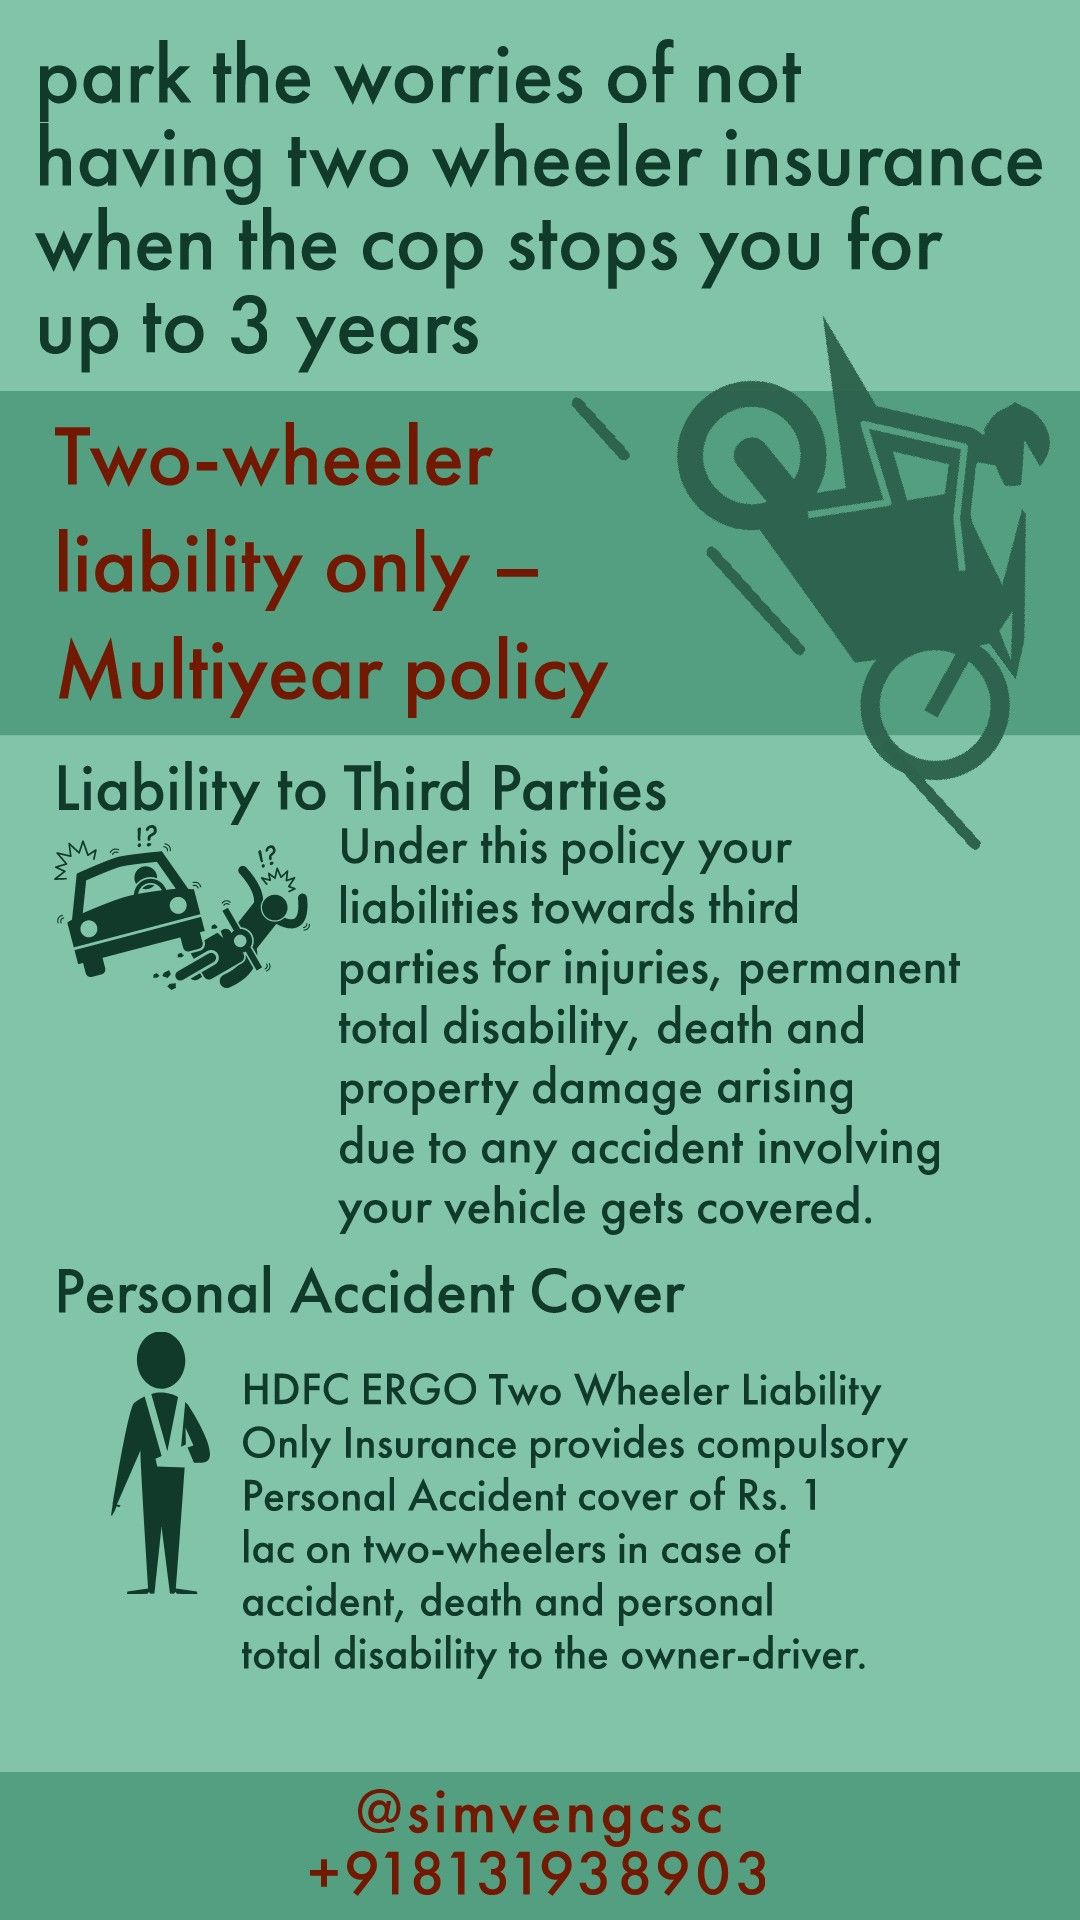 Contact to buy Twowheeler liability only Multiyear